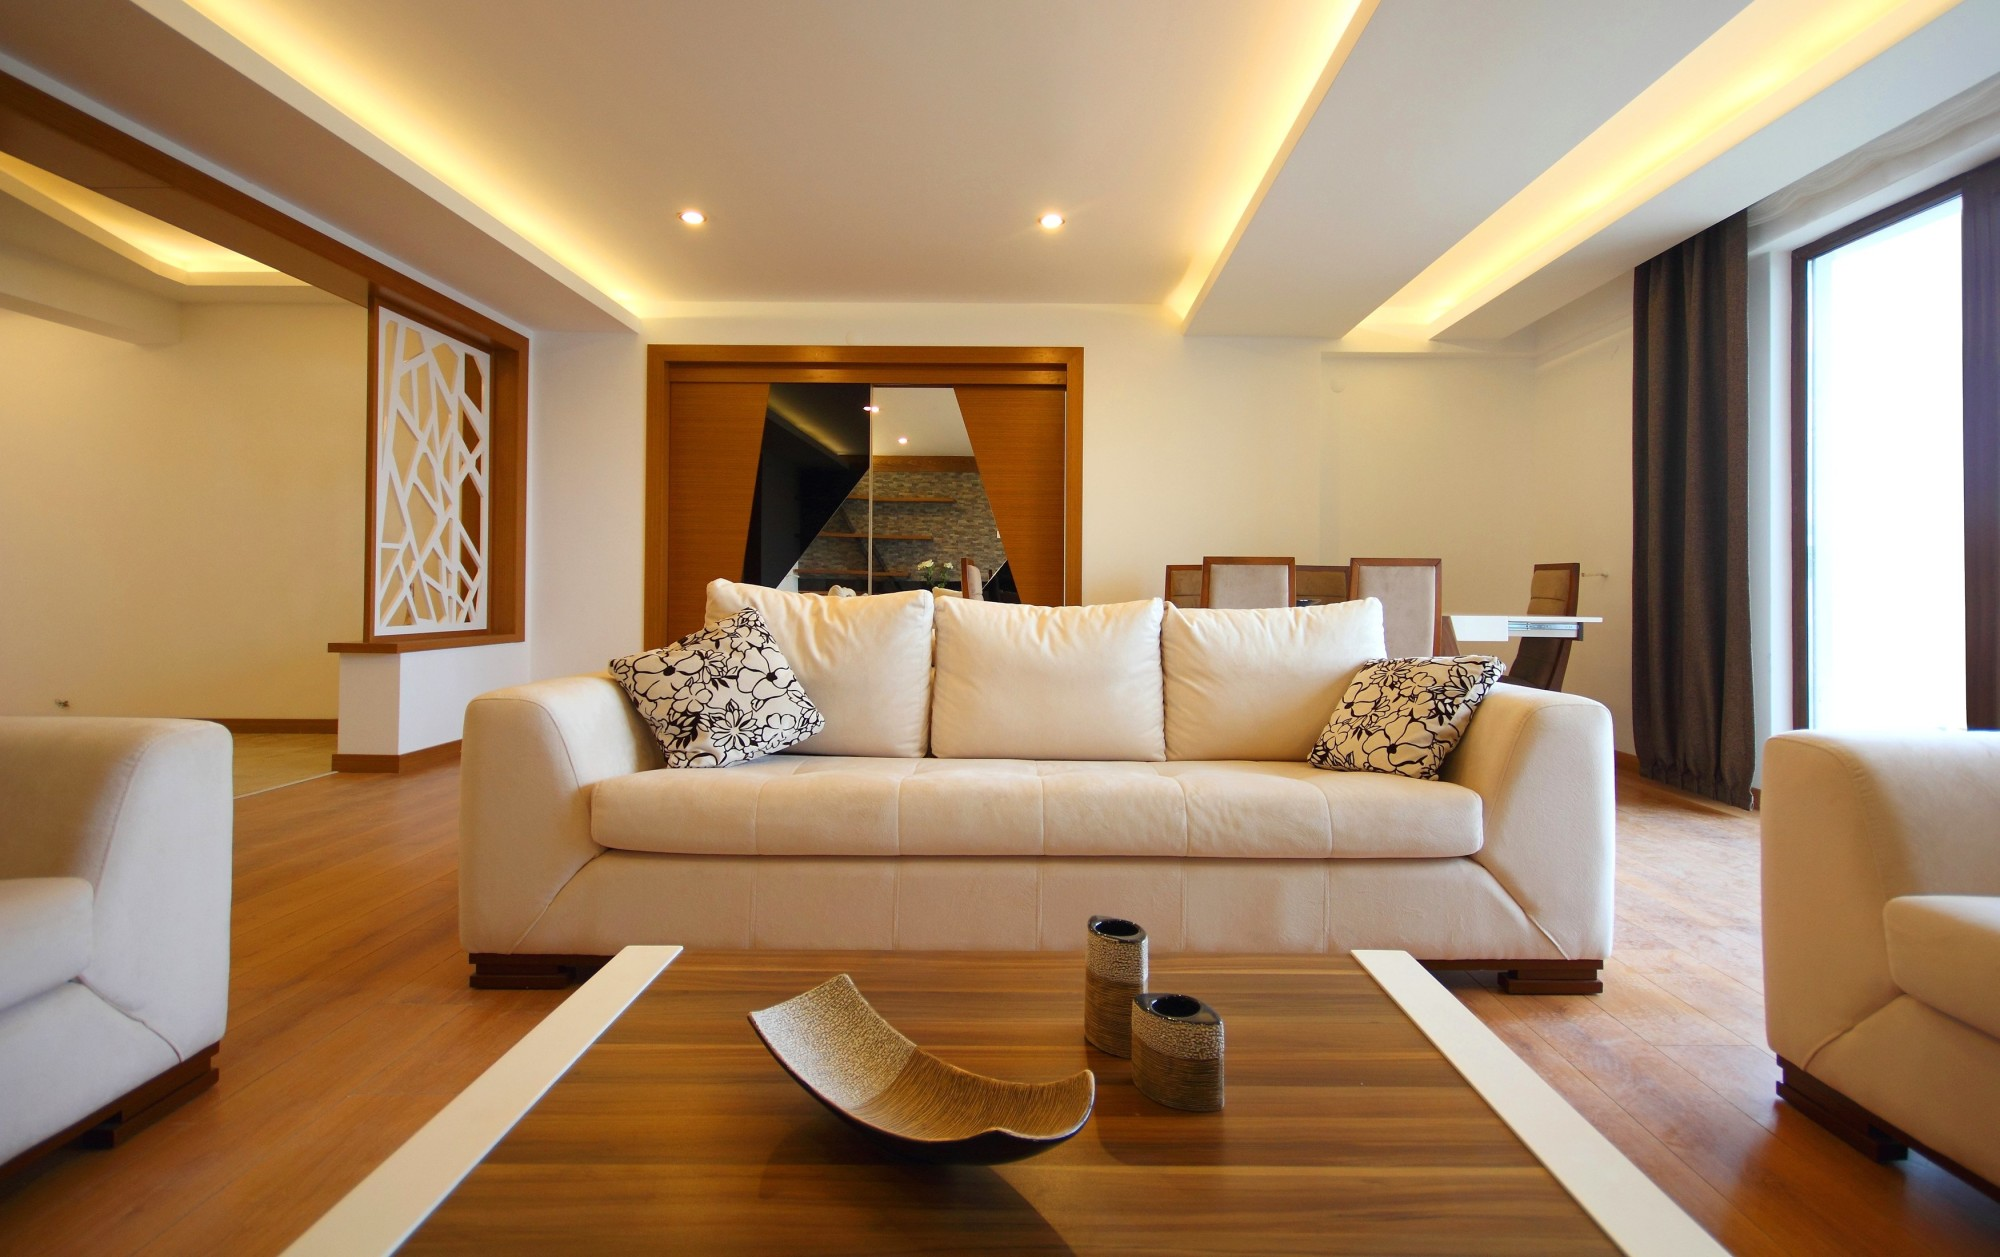 6 Ways to Get Good Lighting in Your Home